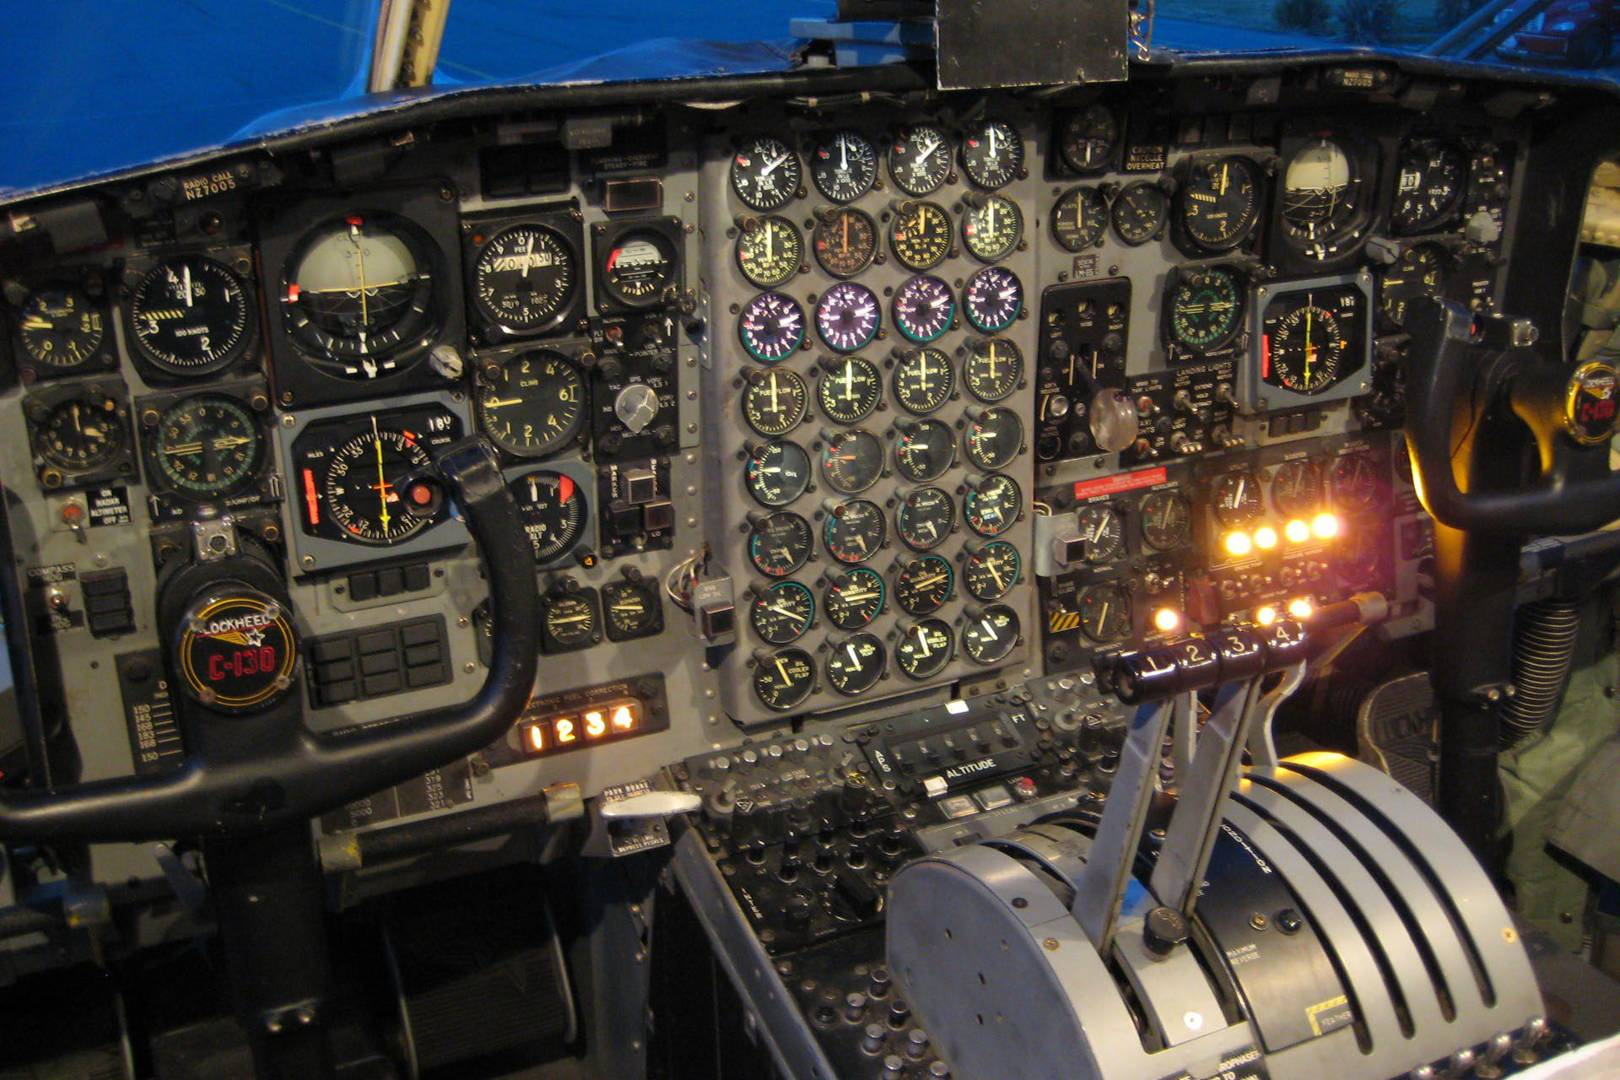 The importance of typography in aircraft piloting systems | WIRED UK